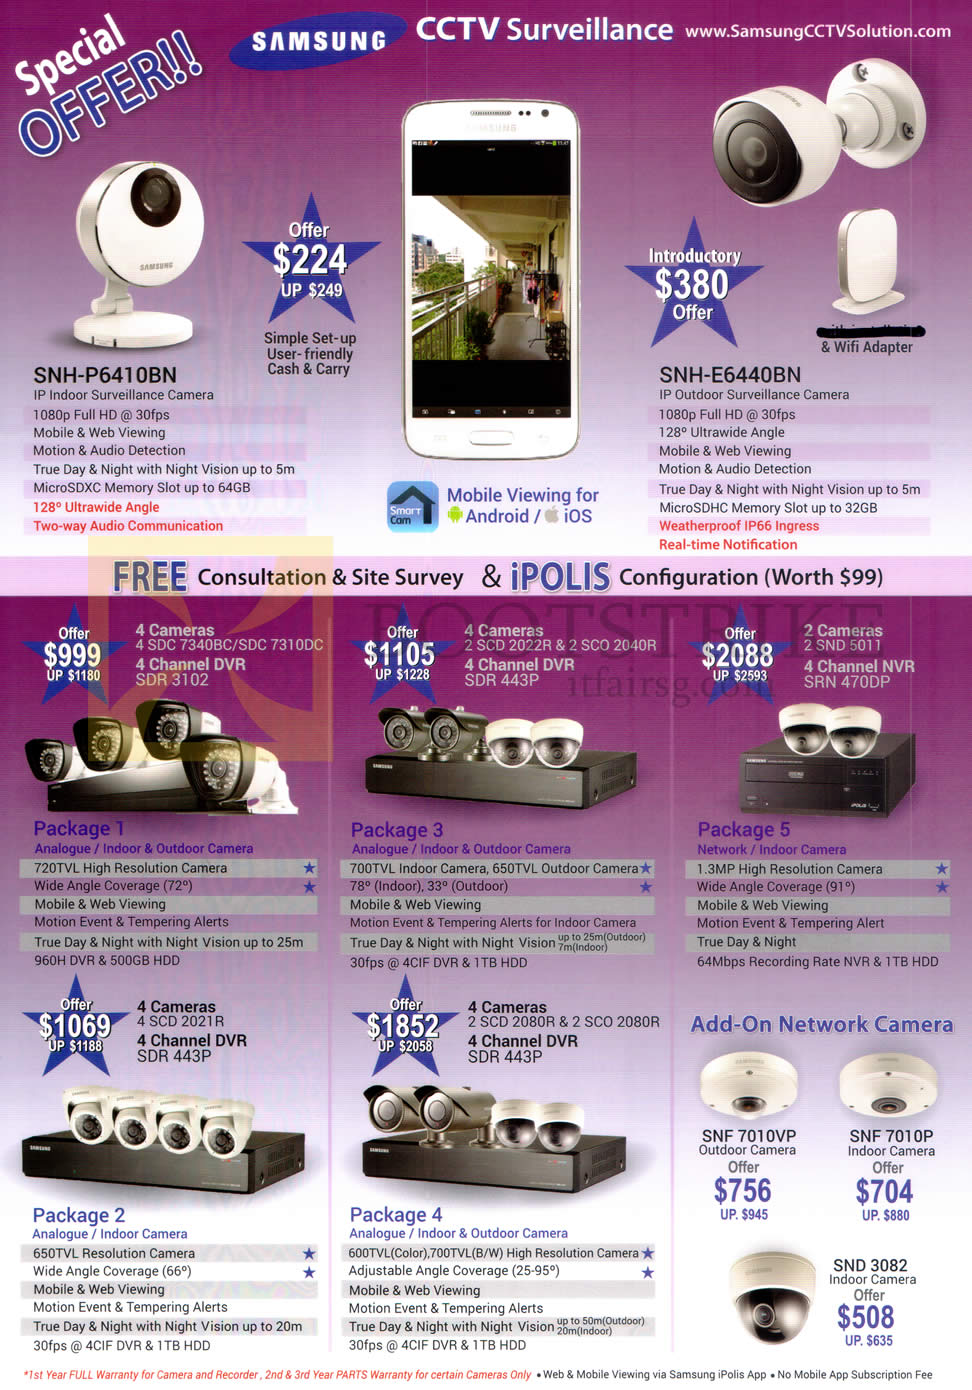 SITEX 2015 price list image brochure of Samsung IPCams SNH-P6410BN, E6440BN, Cameras, Packages 1, 2, 3, 4, 5, Add On Network Camera, SNF 7010VP, SNF 7010P, SND3082